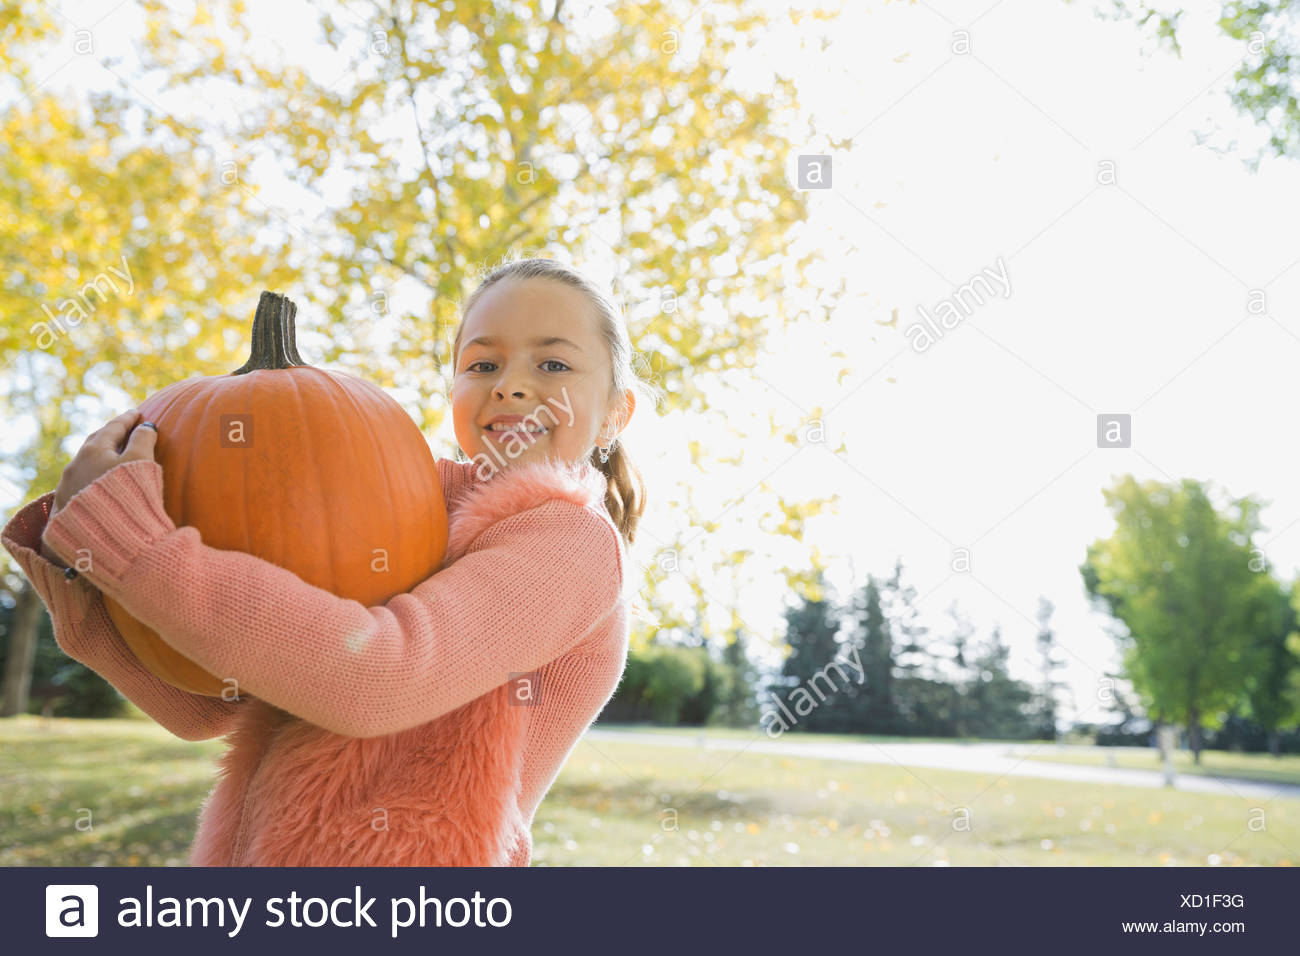 Portrait of happy girl carrying pumpkin - Stock Image